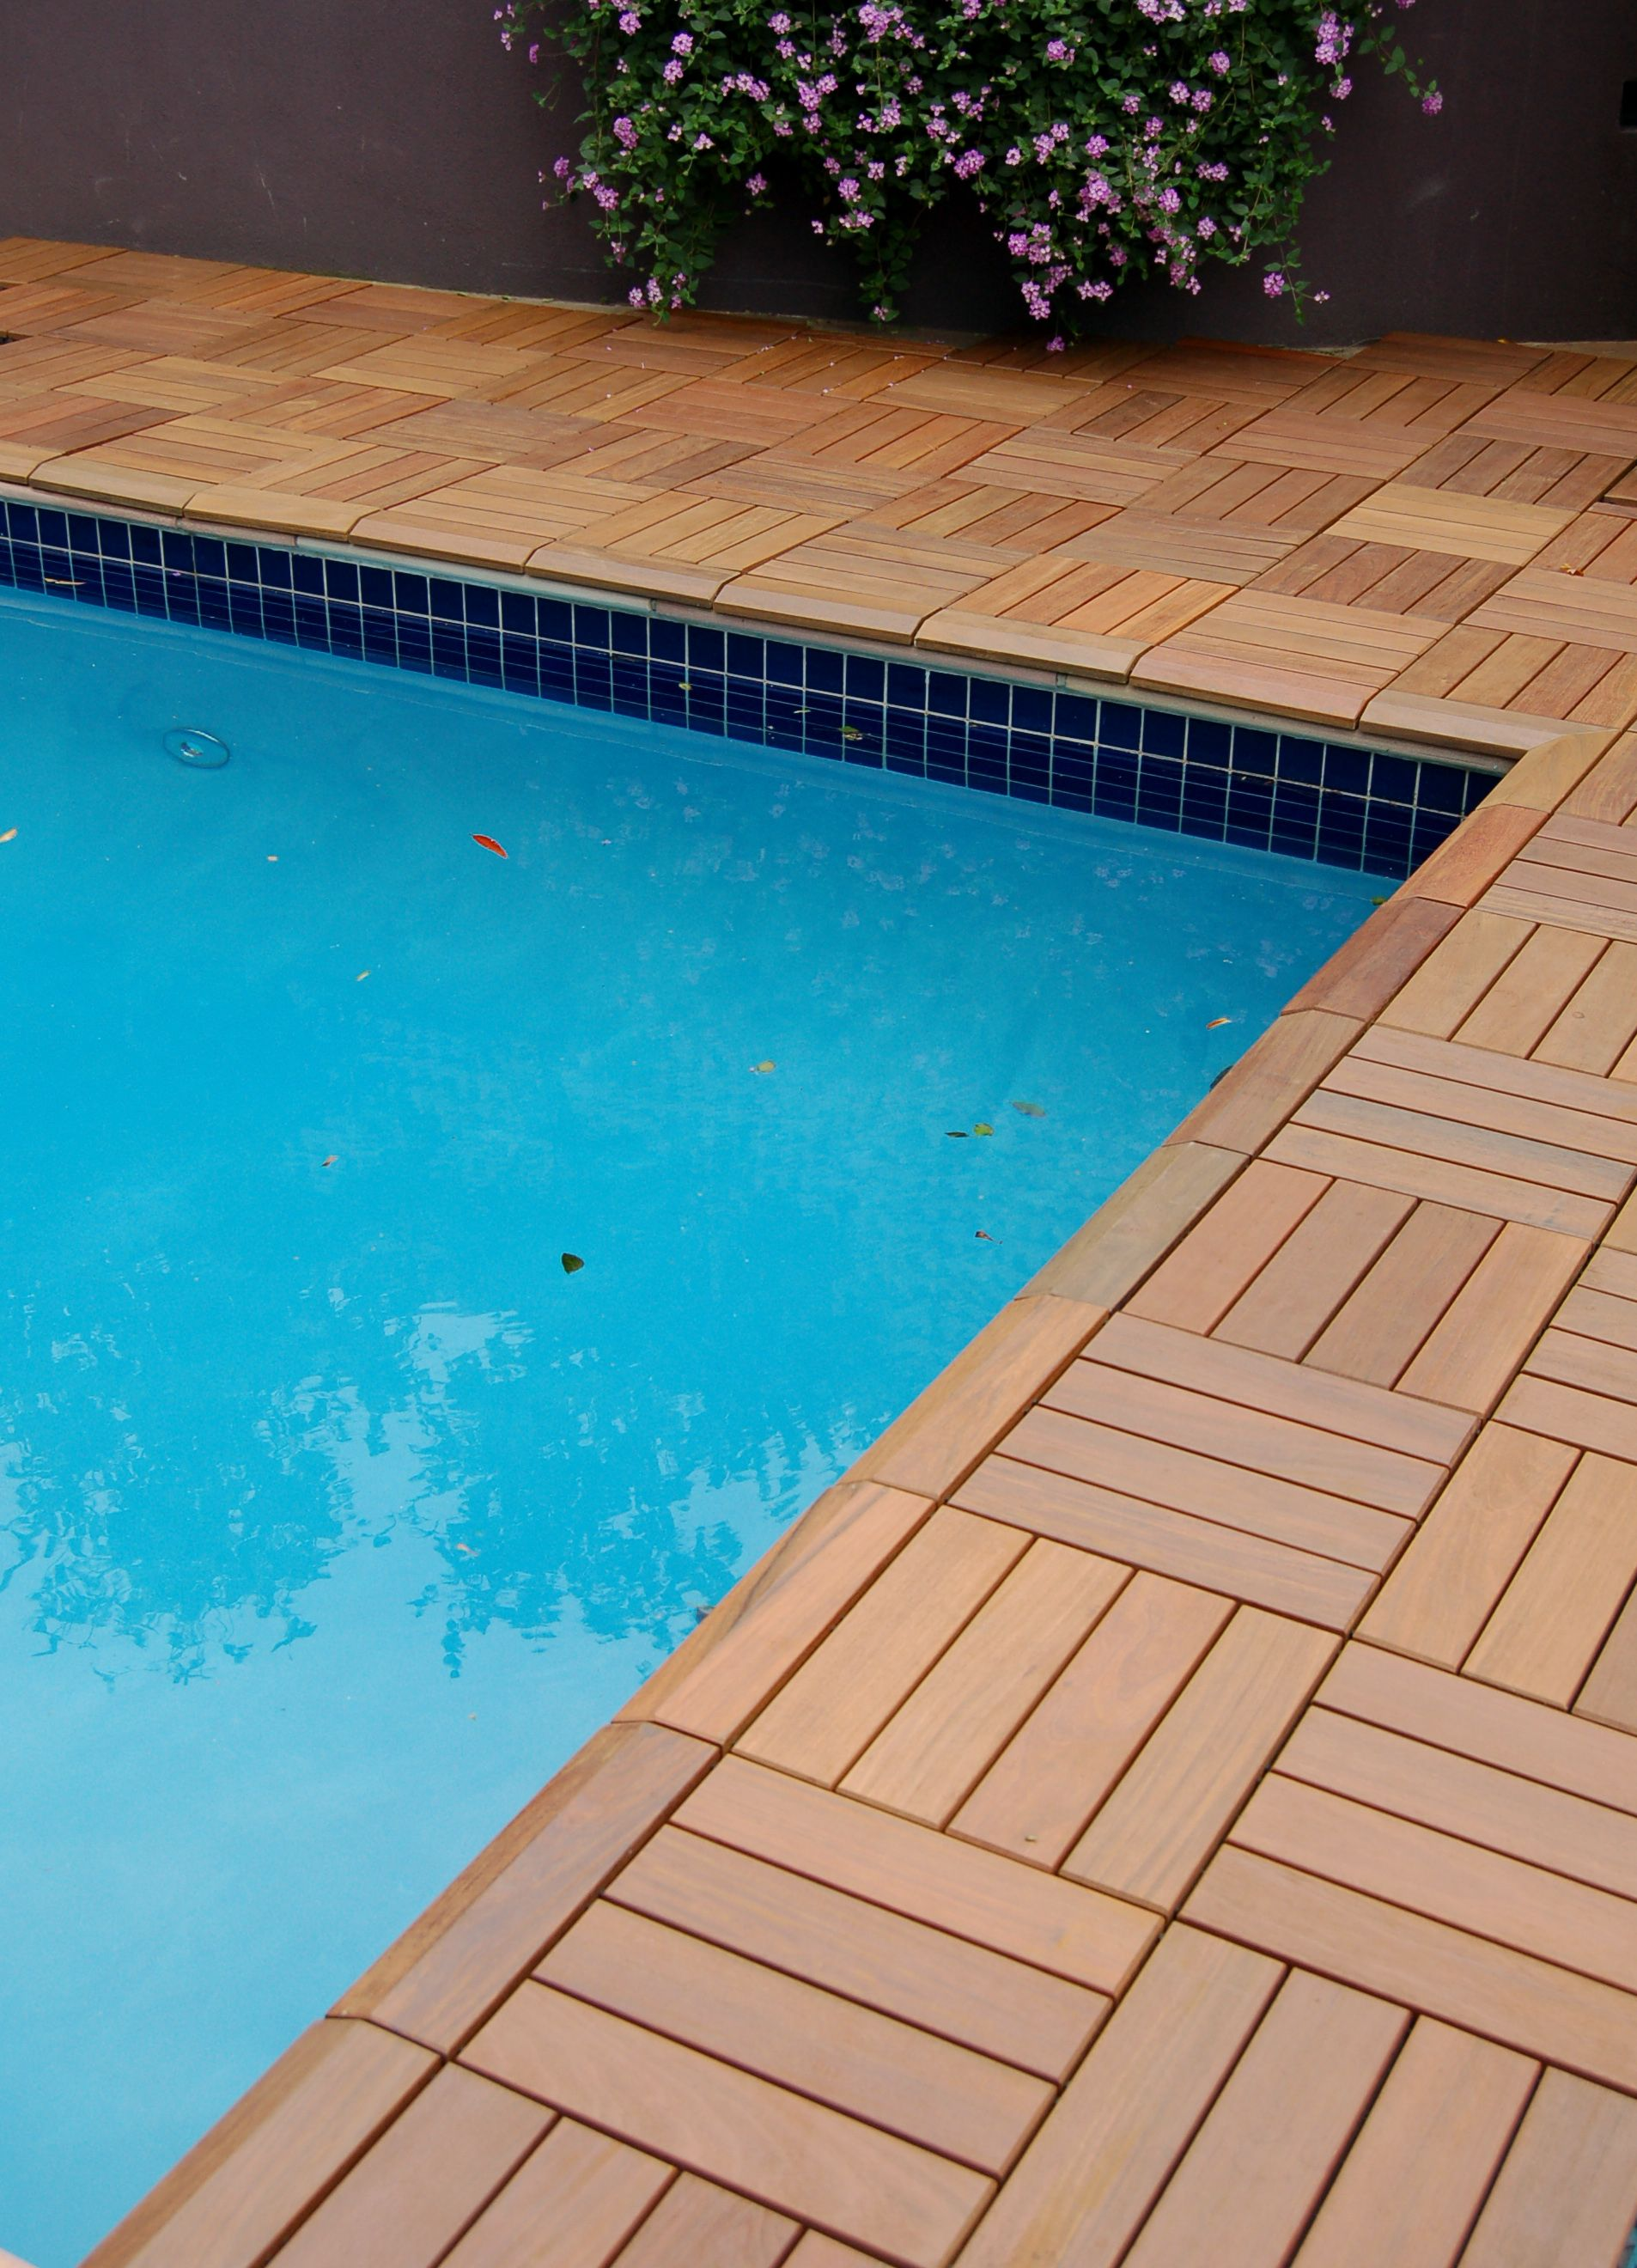 Elegant SwiftDeck Wood Patio Tiles Right To The Pool Edge